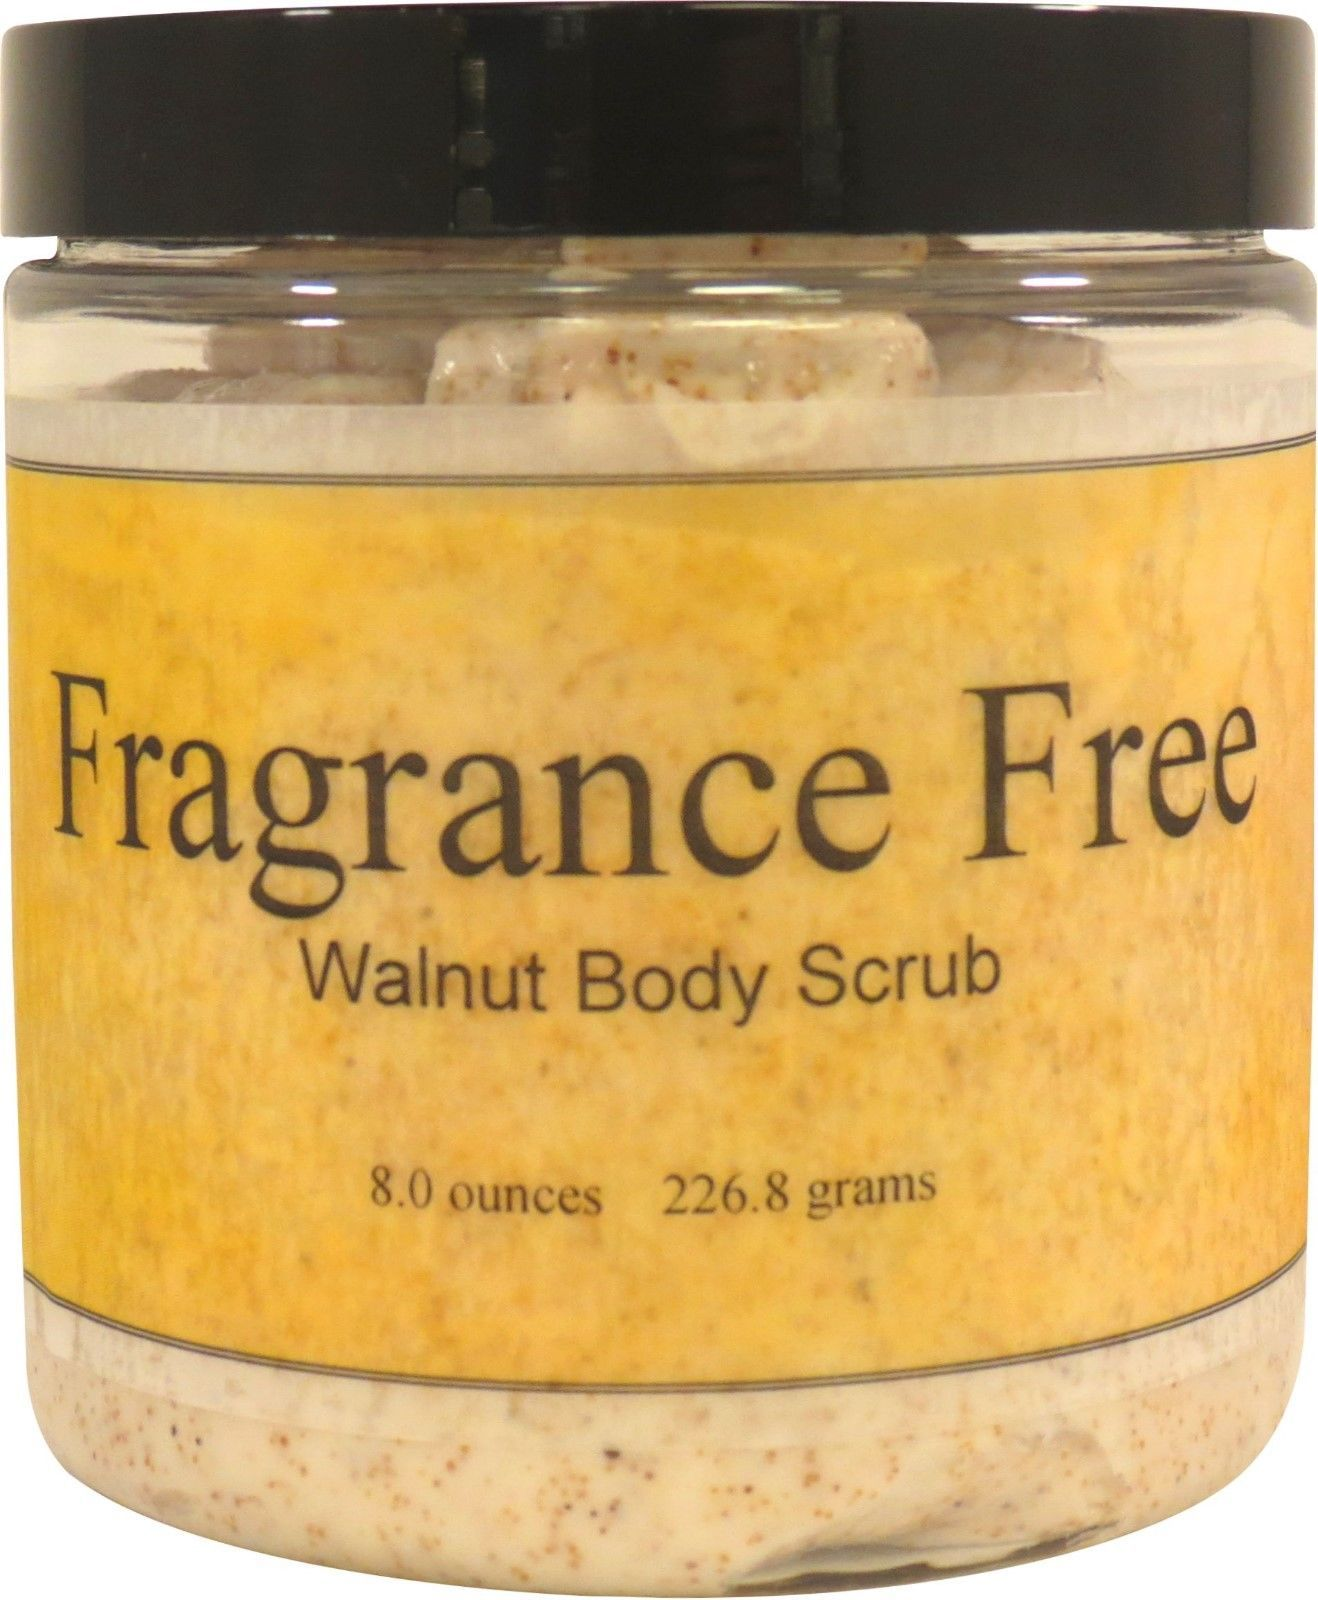 Fragrance Free Walnut Body Scrub